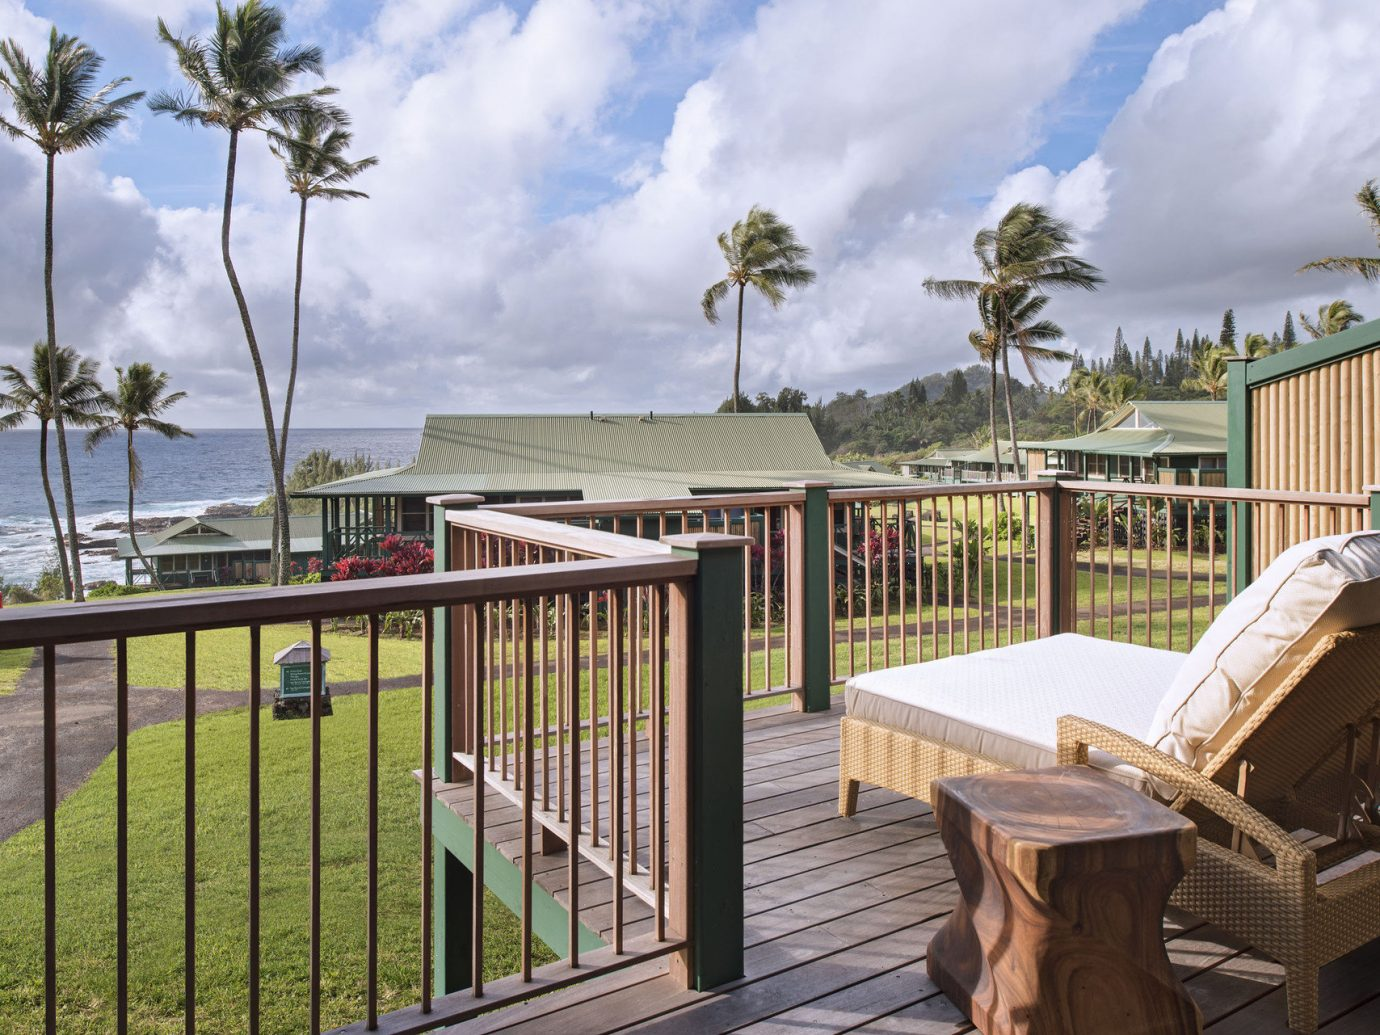 Balcony Beach Boutique Hotels Buildings Exterior Hotels isolation lounge chairs Luxury Travel Ocean ocean view palm trees Patio private remote Terrace Tropical view Fence sky outdoor property home vacation house real estate estate outdoor structure Deck cottage backyard Villa railing overlooking